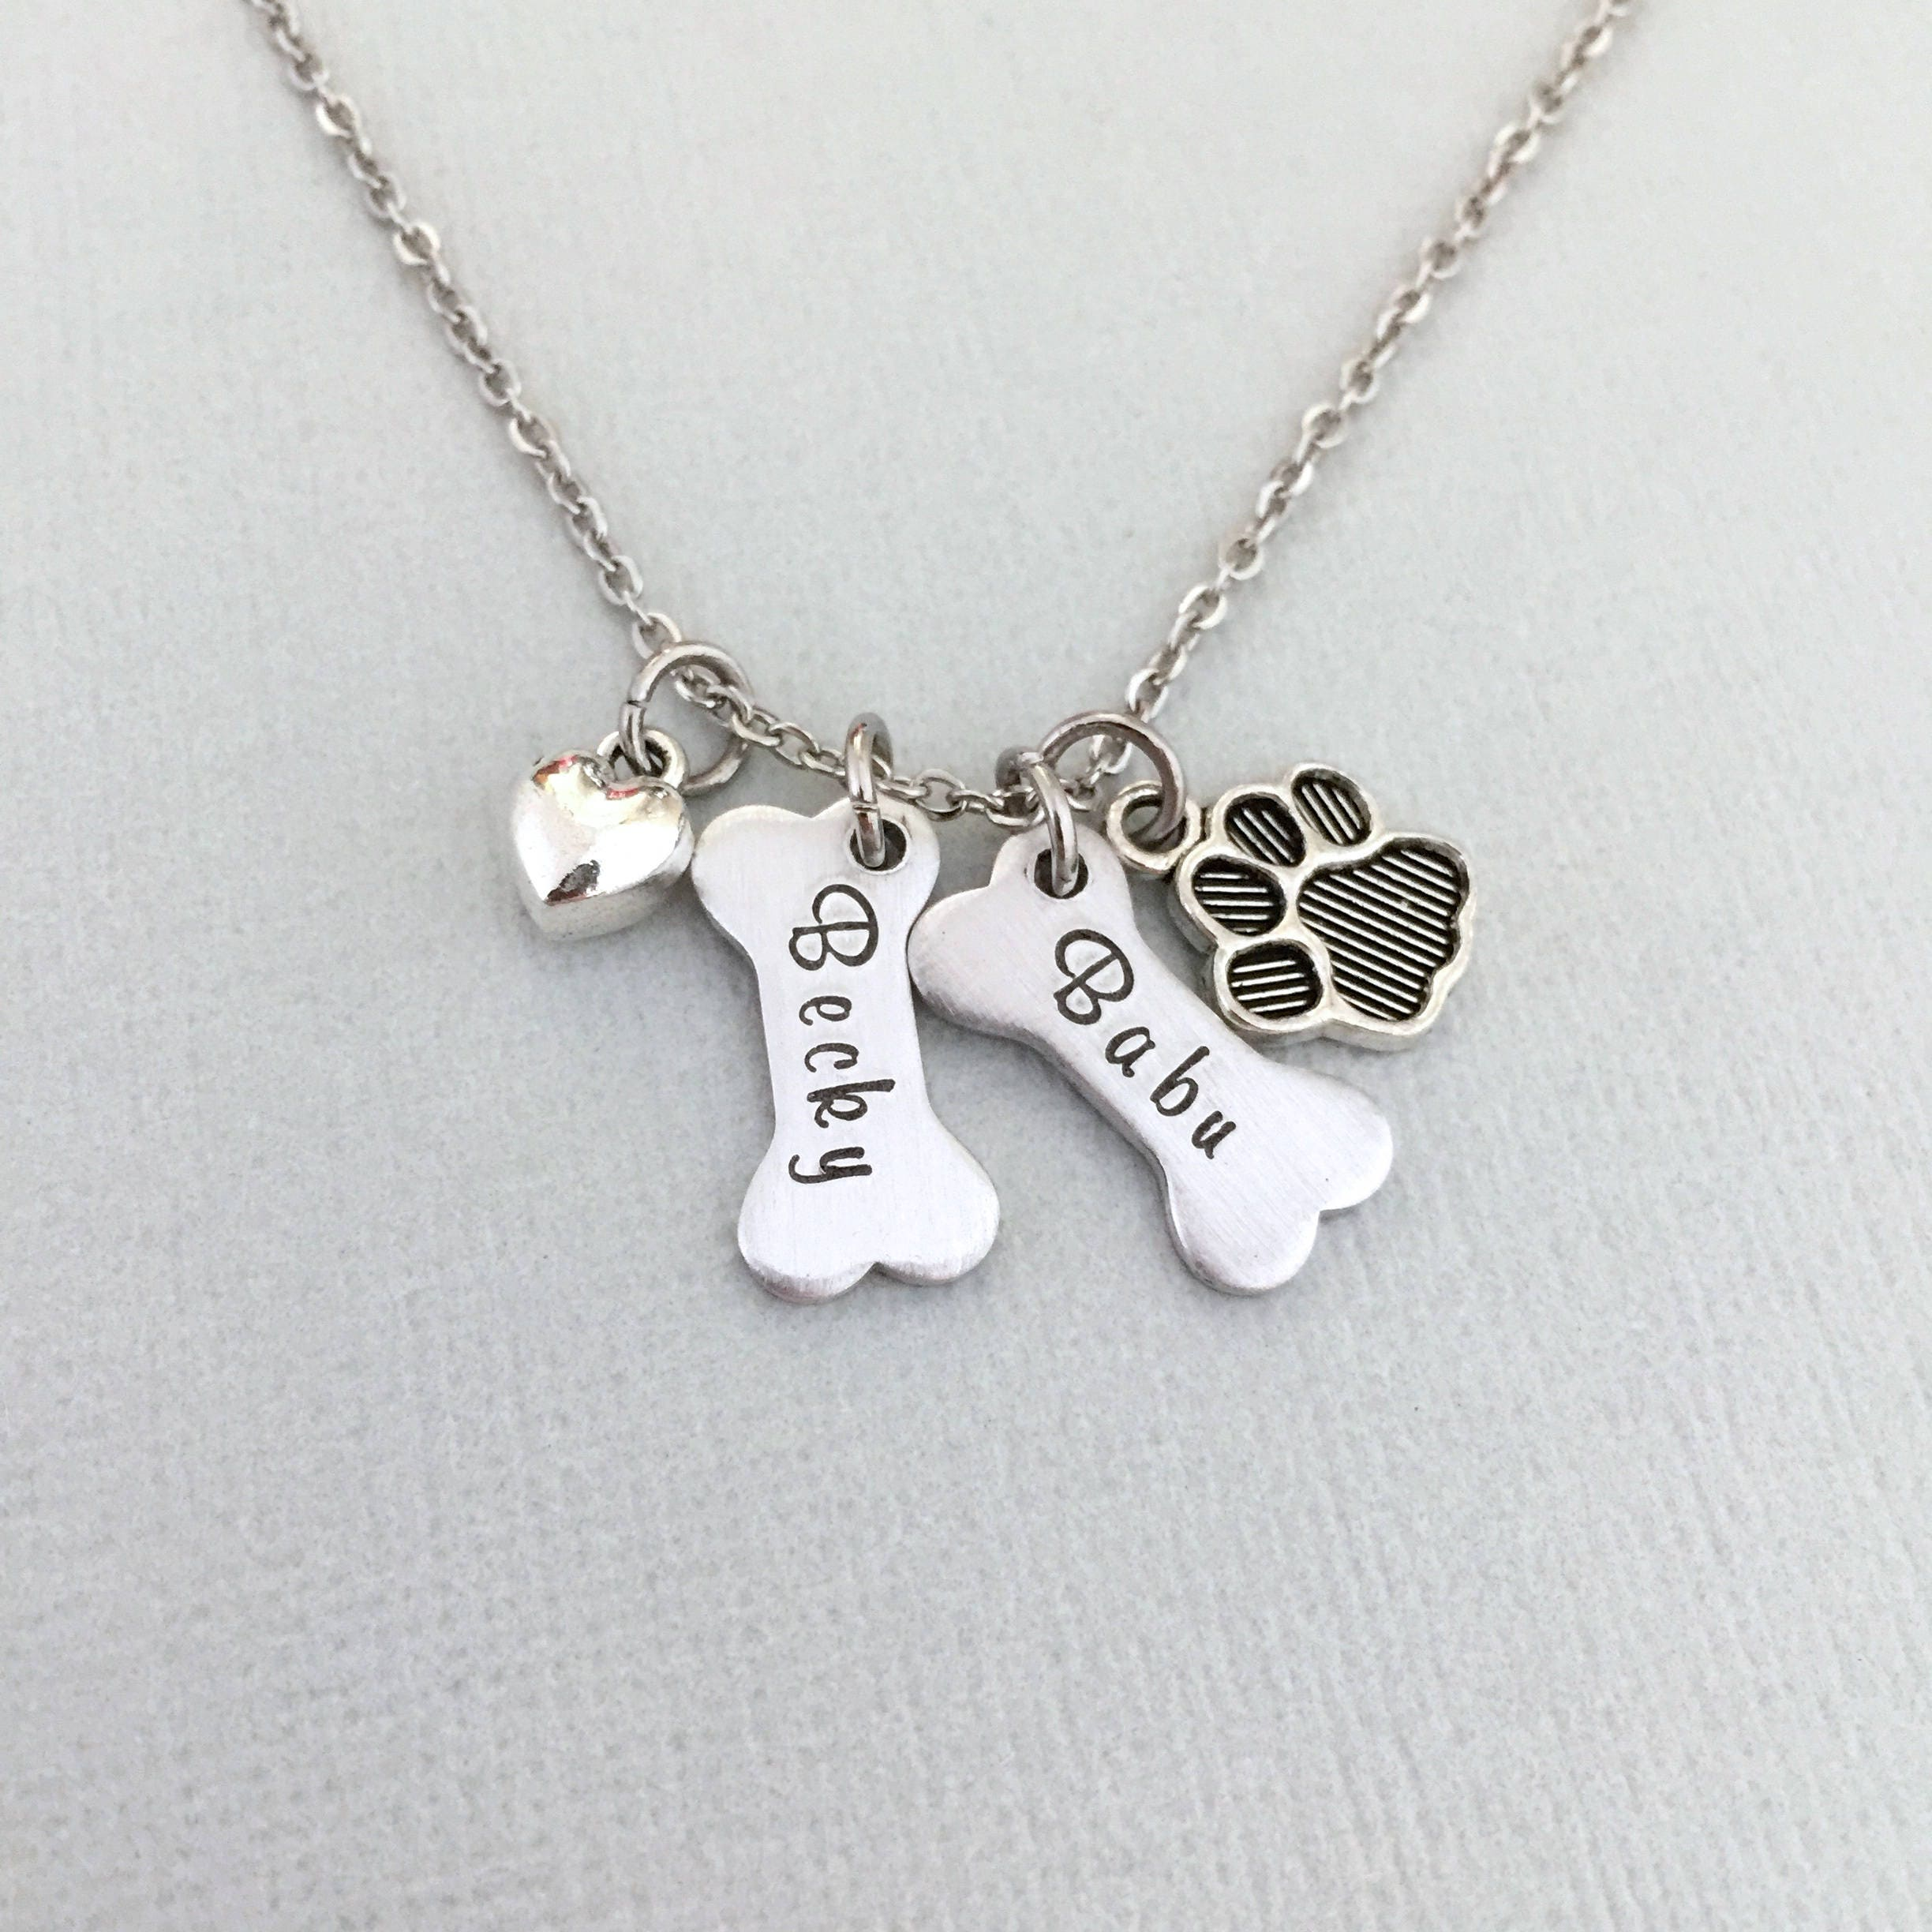 medium home necklace s tag dog men uniqjewelrydesigns inspirational